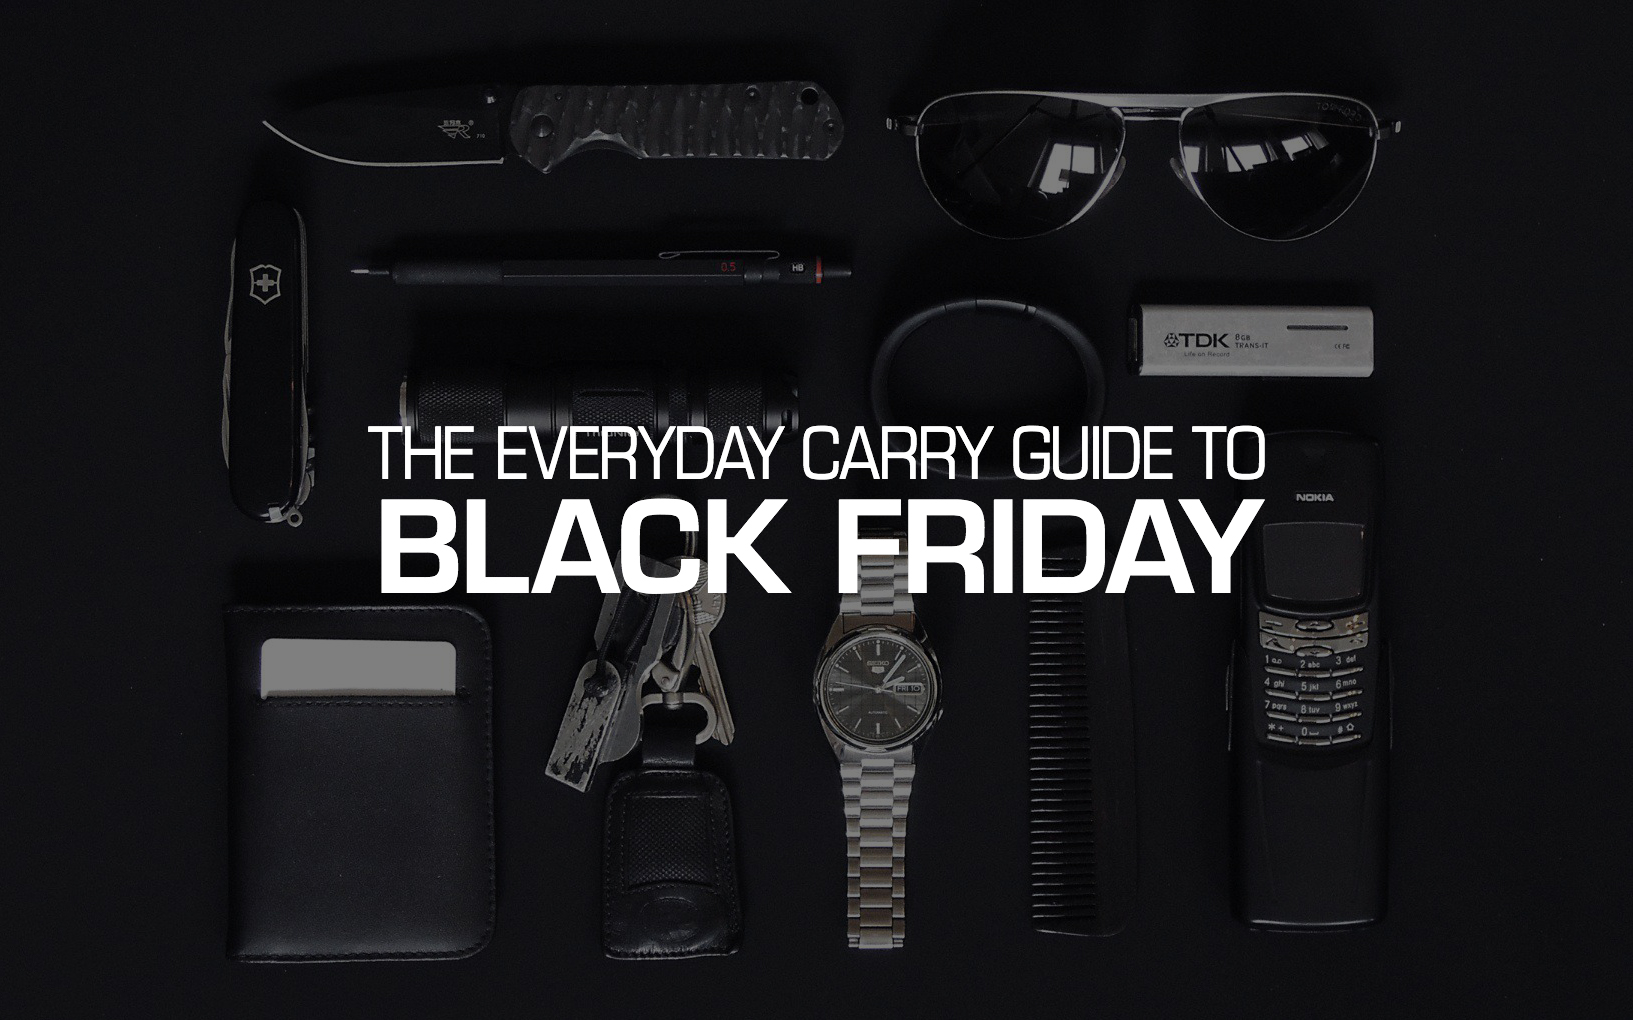 The Best Black Friday Deals 2016 | Everyday Carry